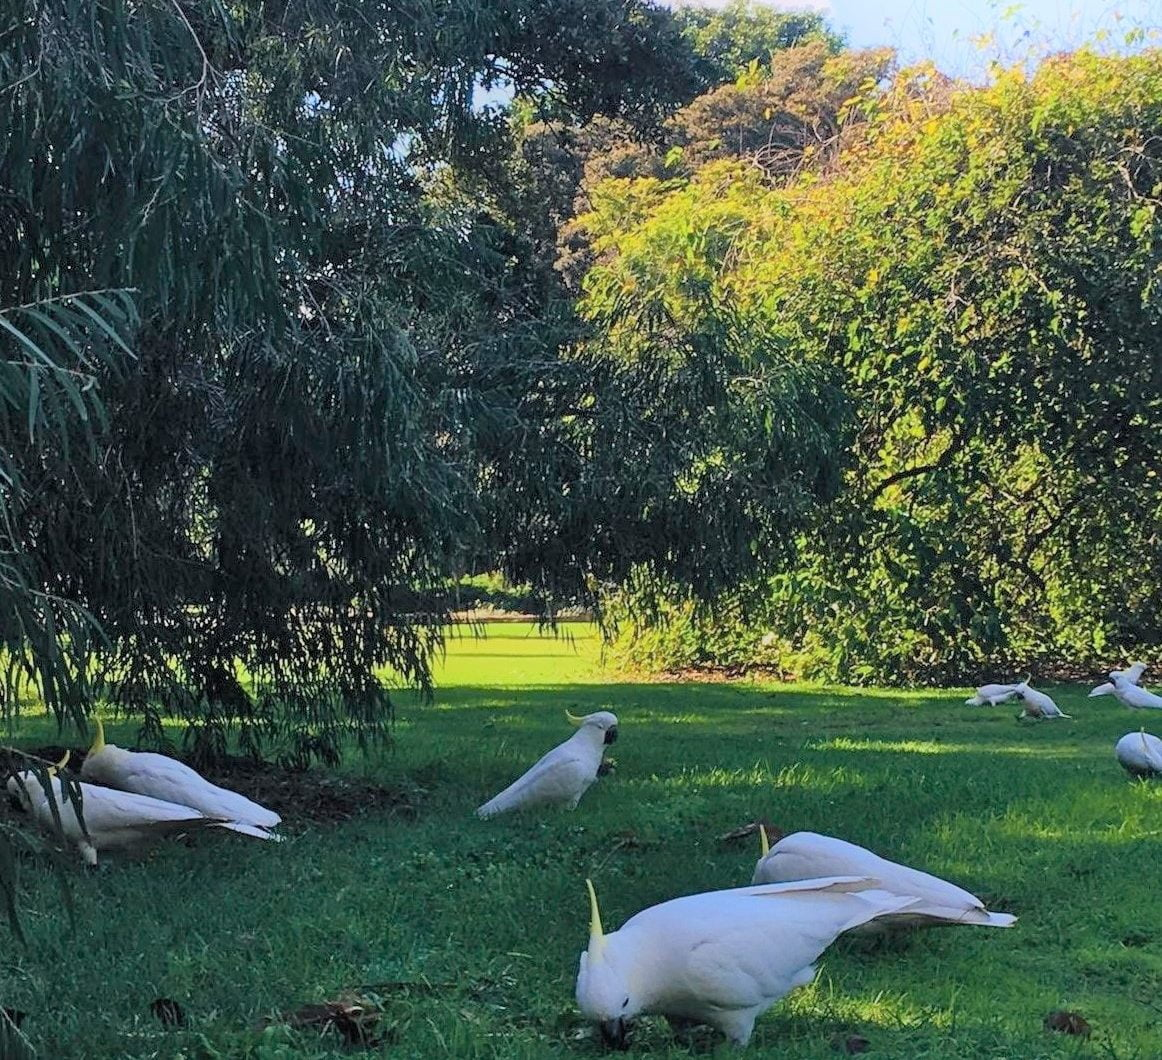 sulpher-crested cockatoos grazing on grass in a park